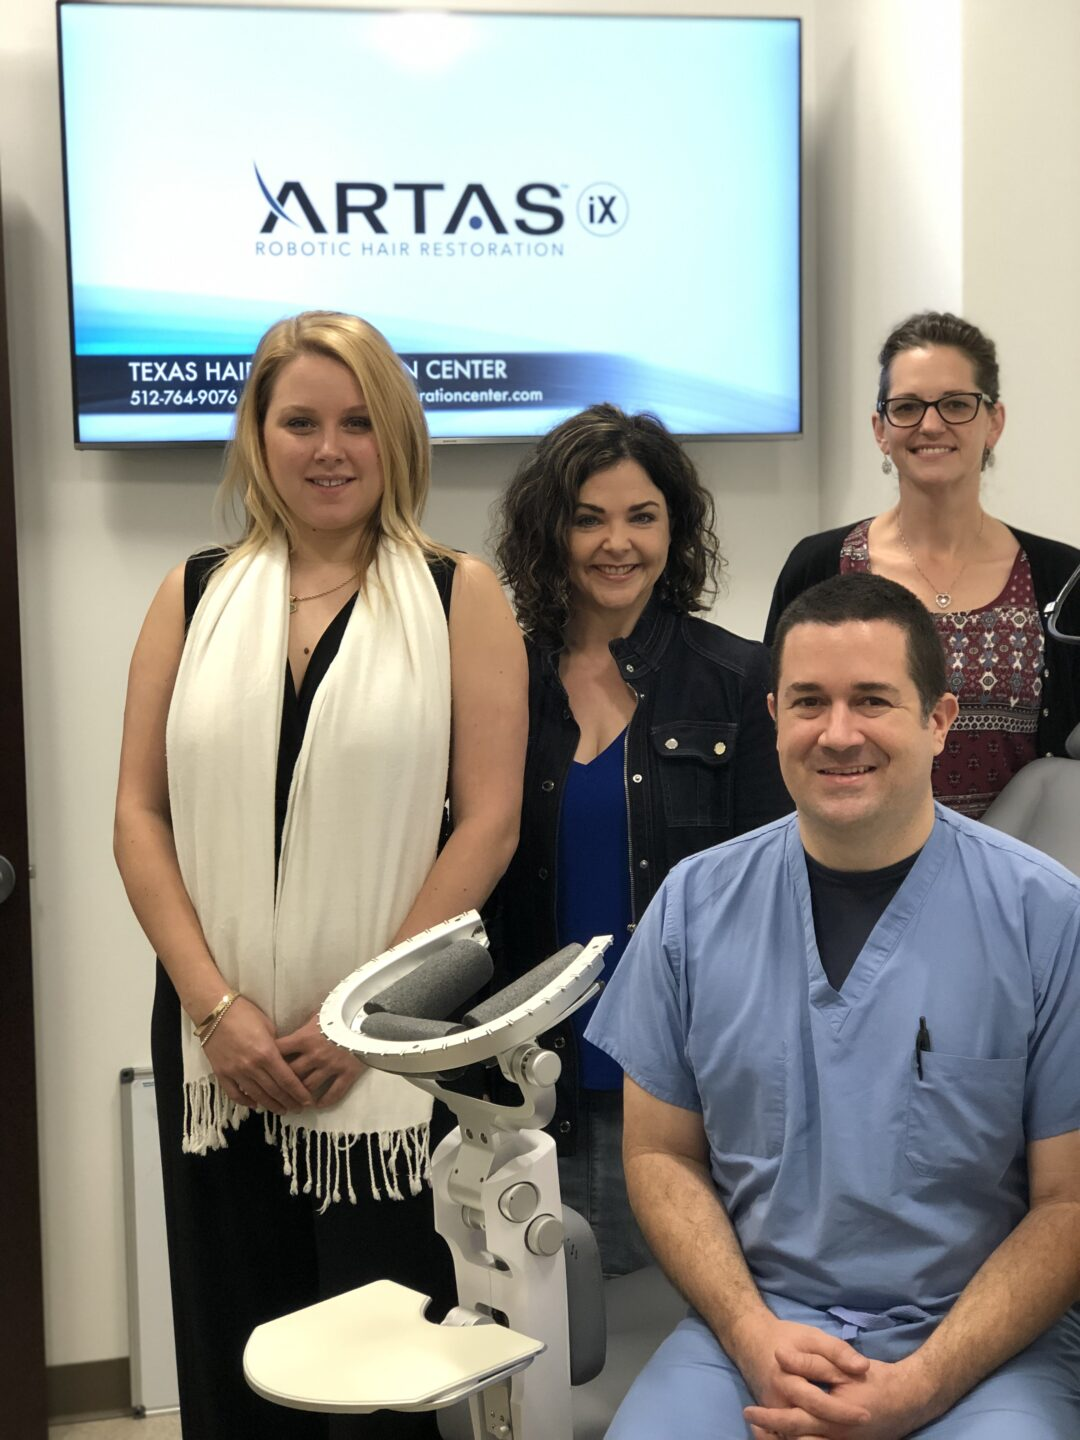 The Finest SMP Results - Our Austin SMP Specialty Clinic and Technicians